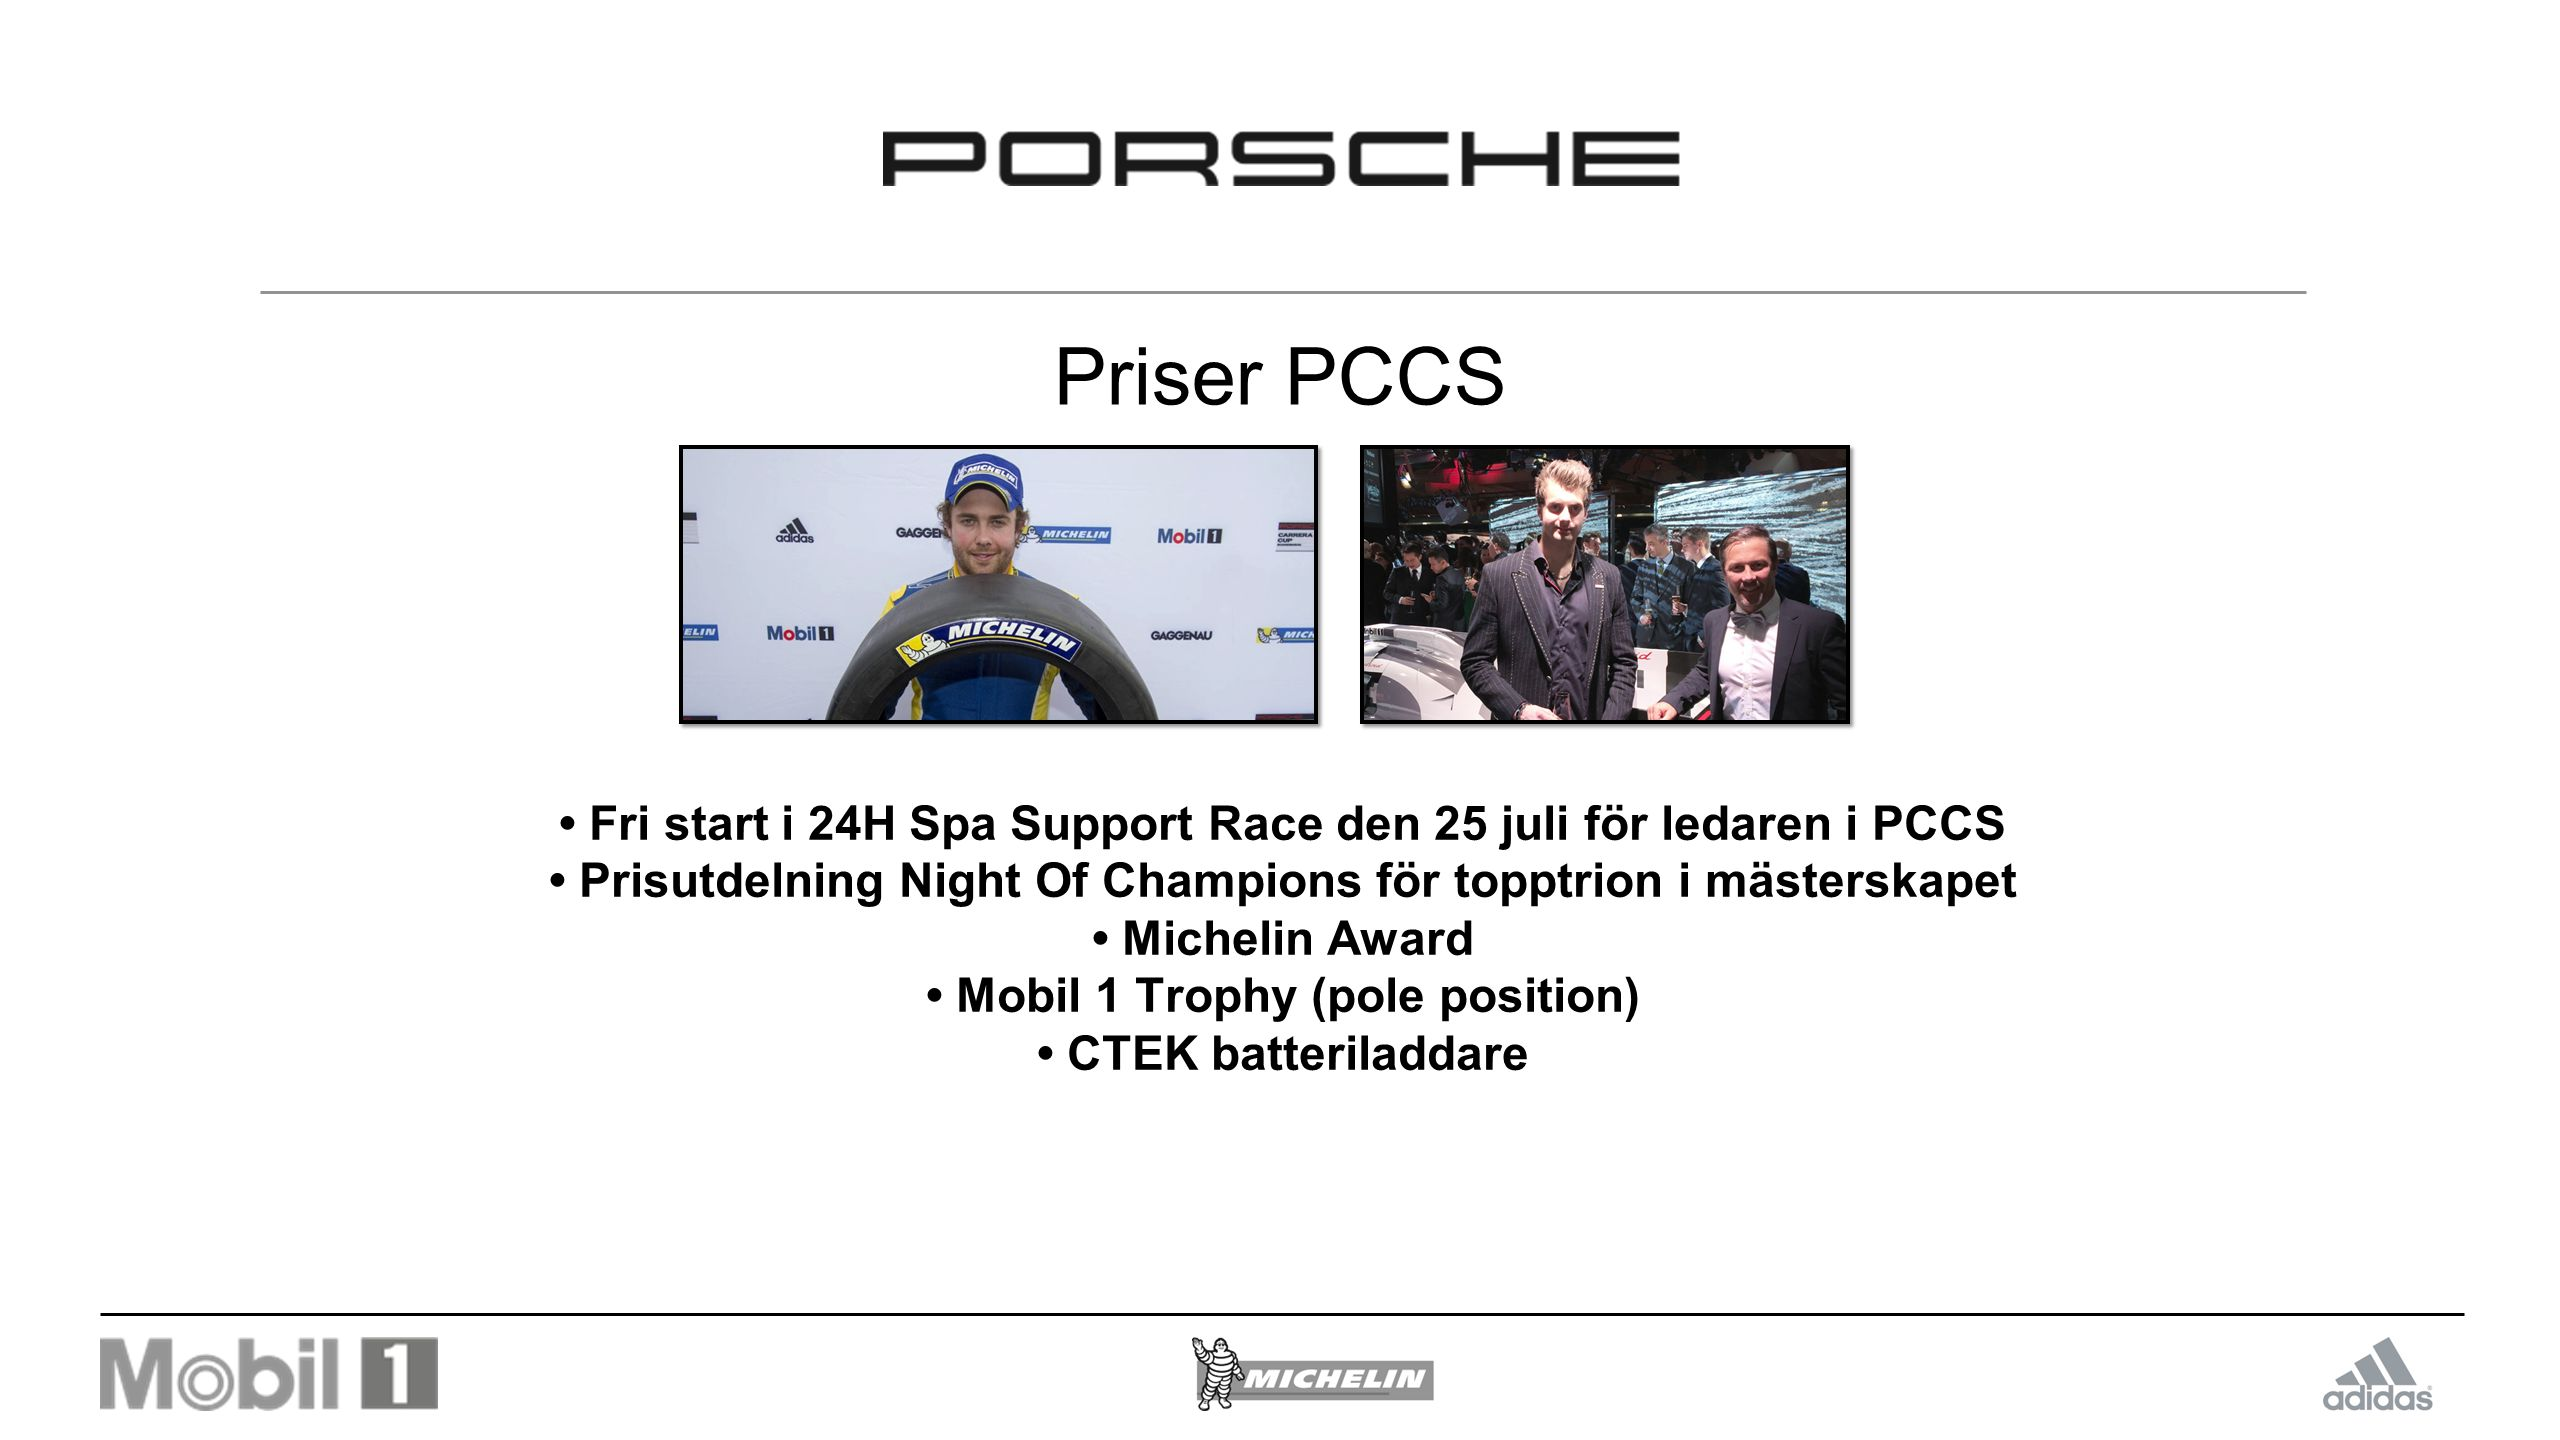 Priser PCCS • Fri start i 24H Spa Support Race den 25 juli för ledaren i PCCS. • Prisutdelning Night Of Champions för topptrion i mästerskapet.